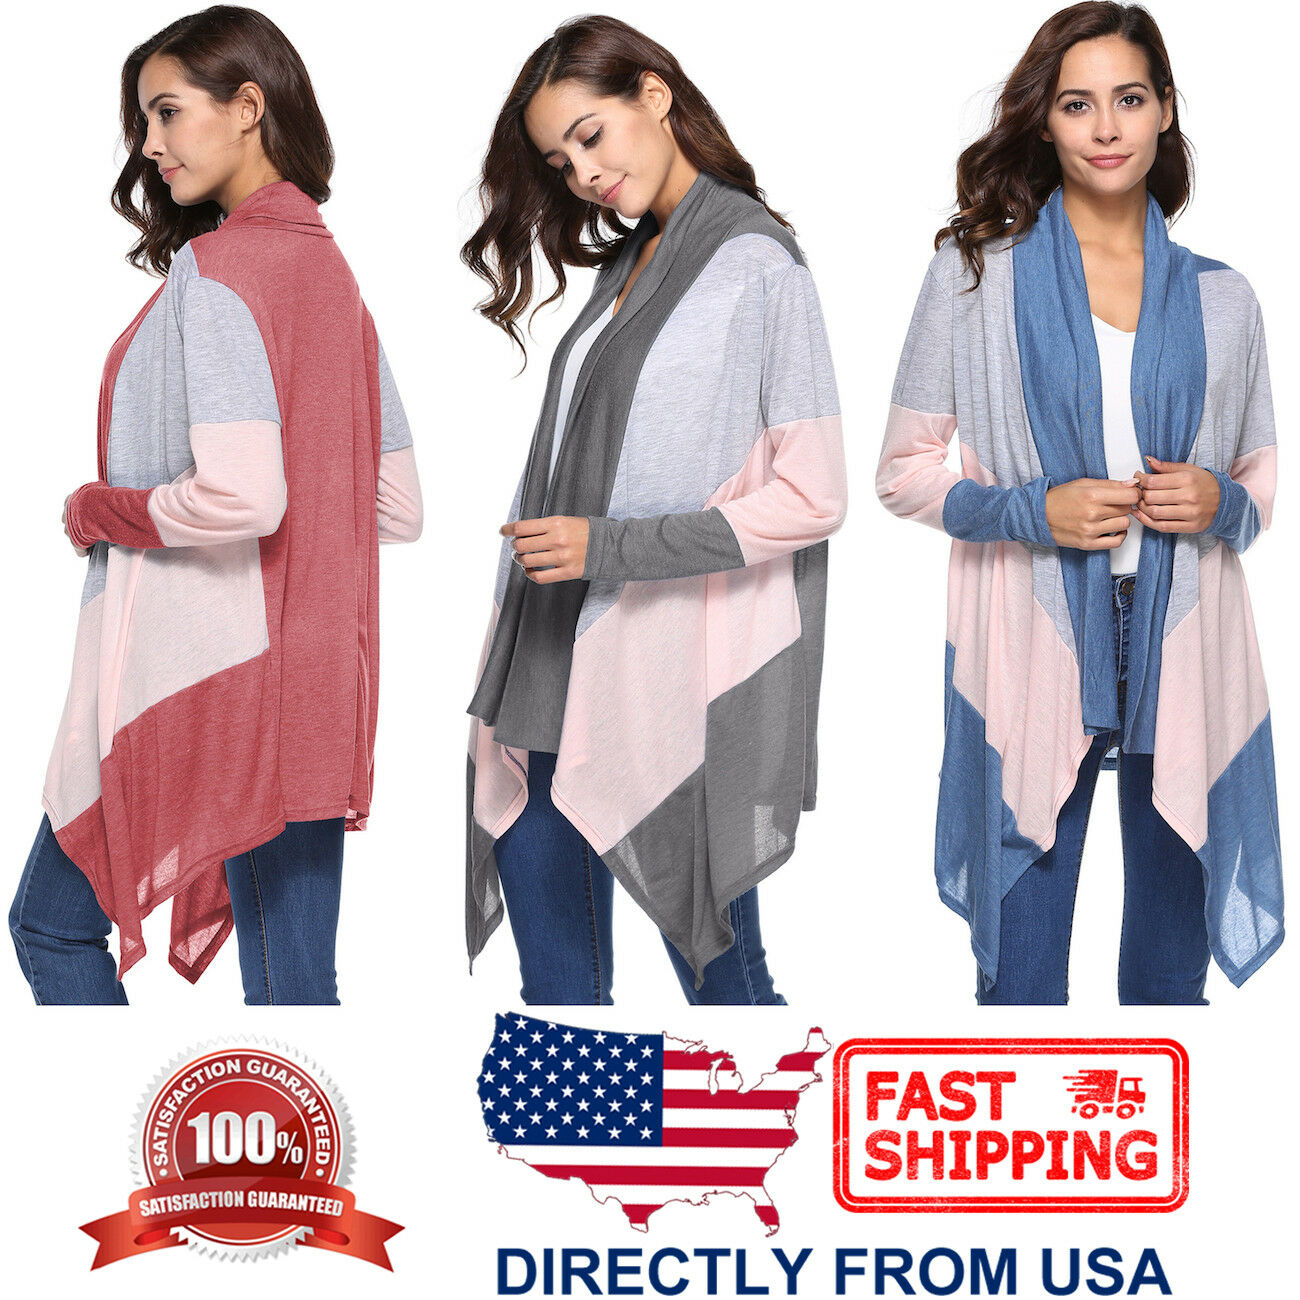 Women's Flutter Lightweight Long Sleeve Color Mix Cardigan Clothing, Shoes & Accessories